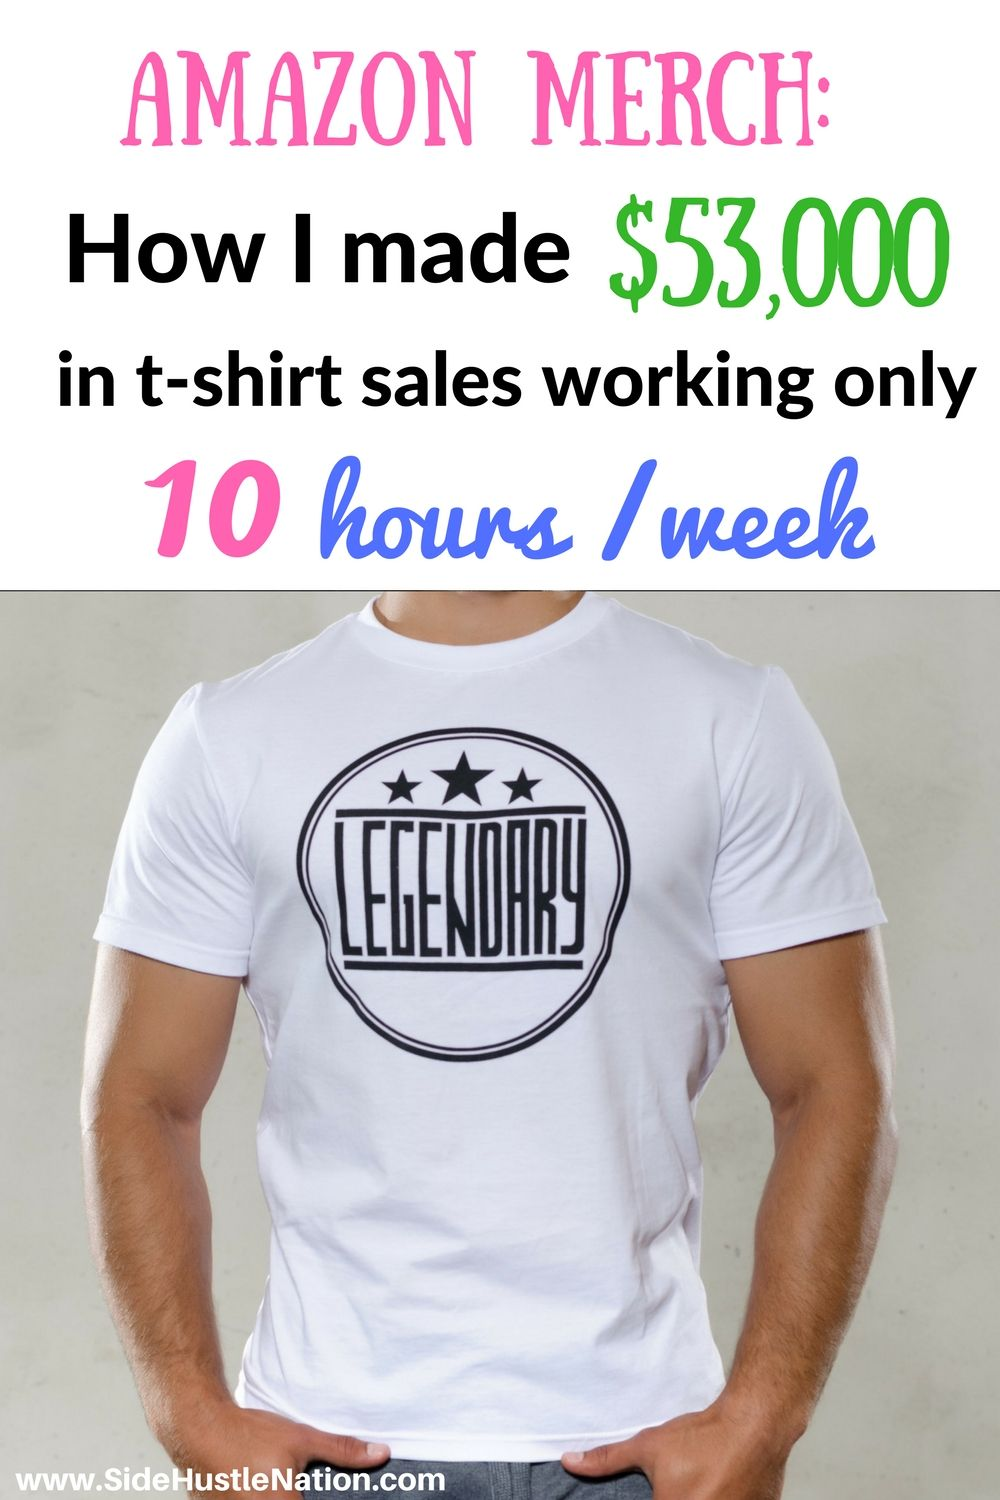 216: Merch by Amazon: $53k in T-Shirt Profits in 10 Hours a